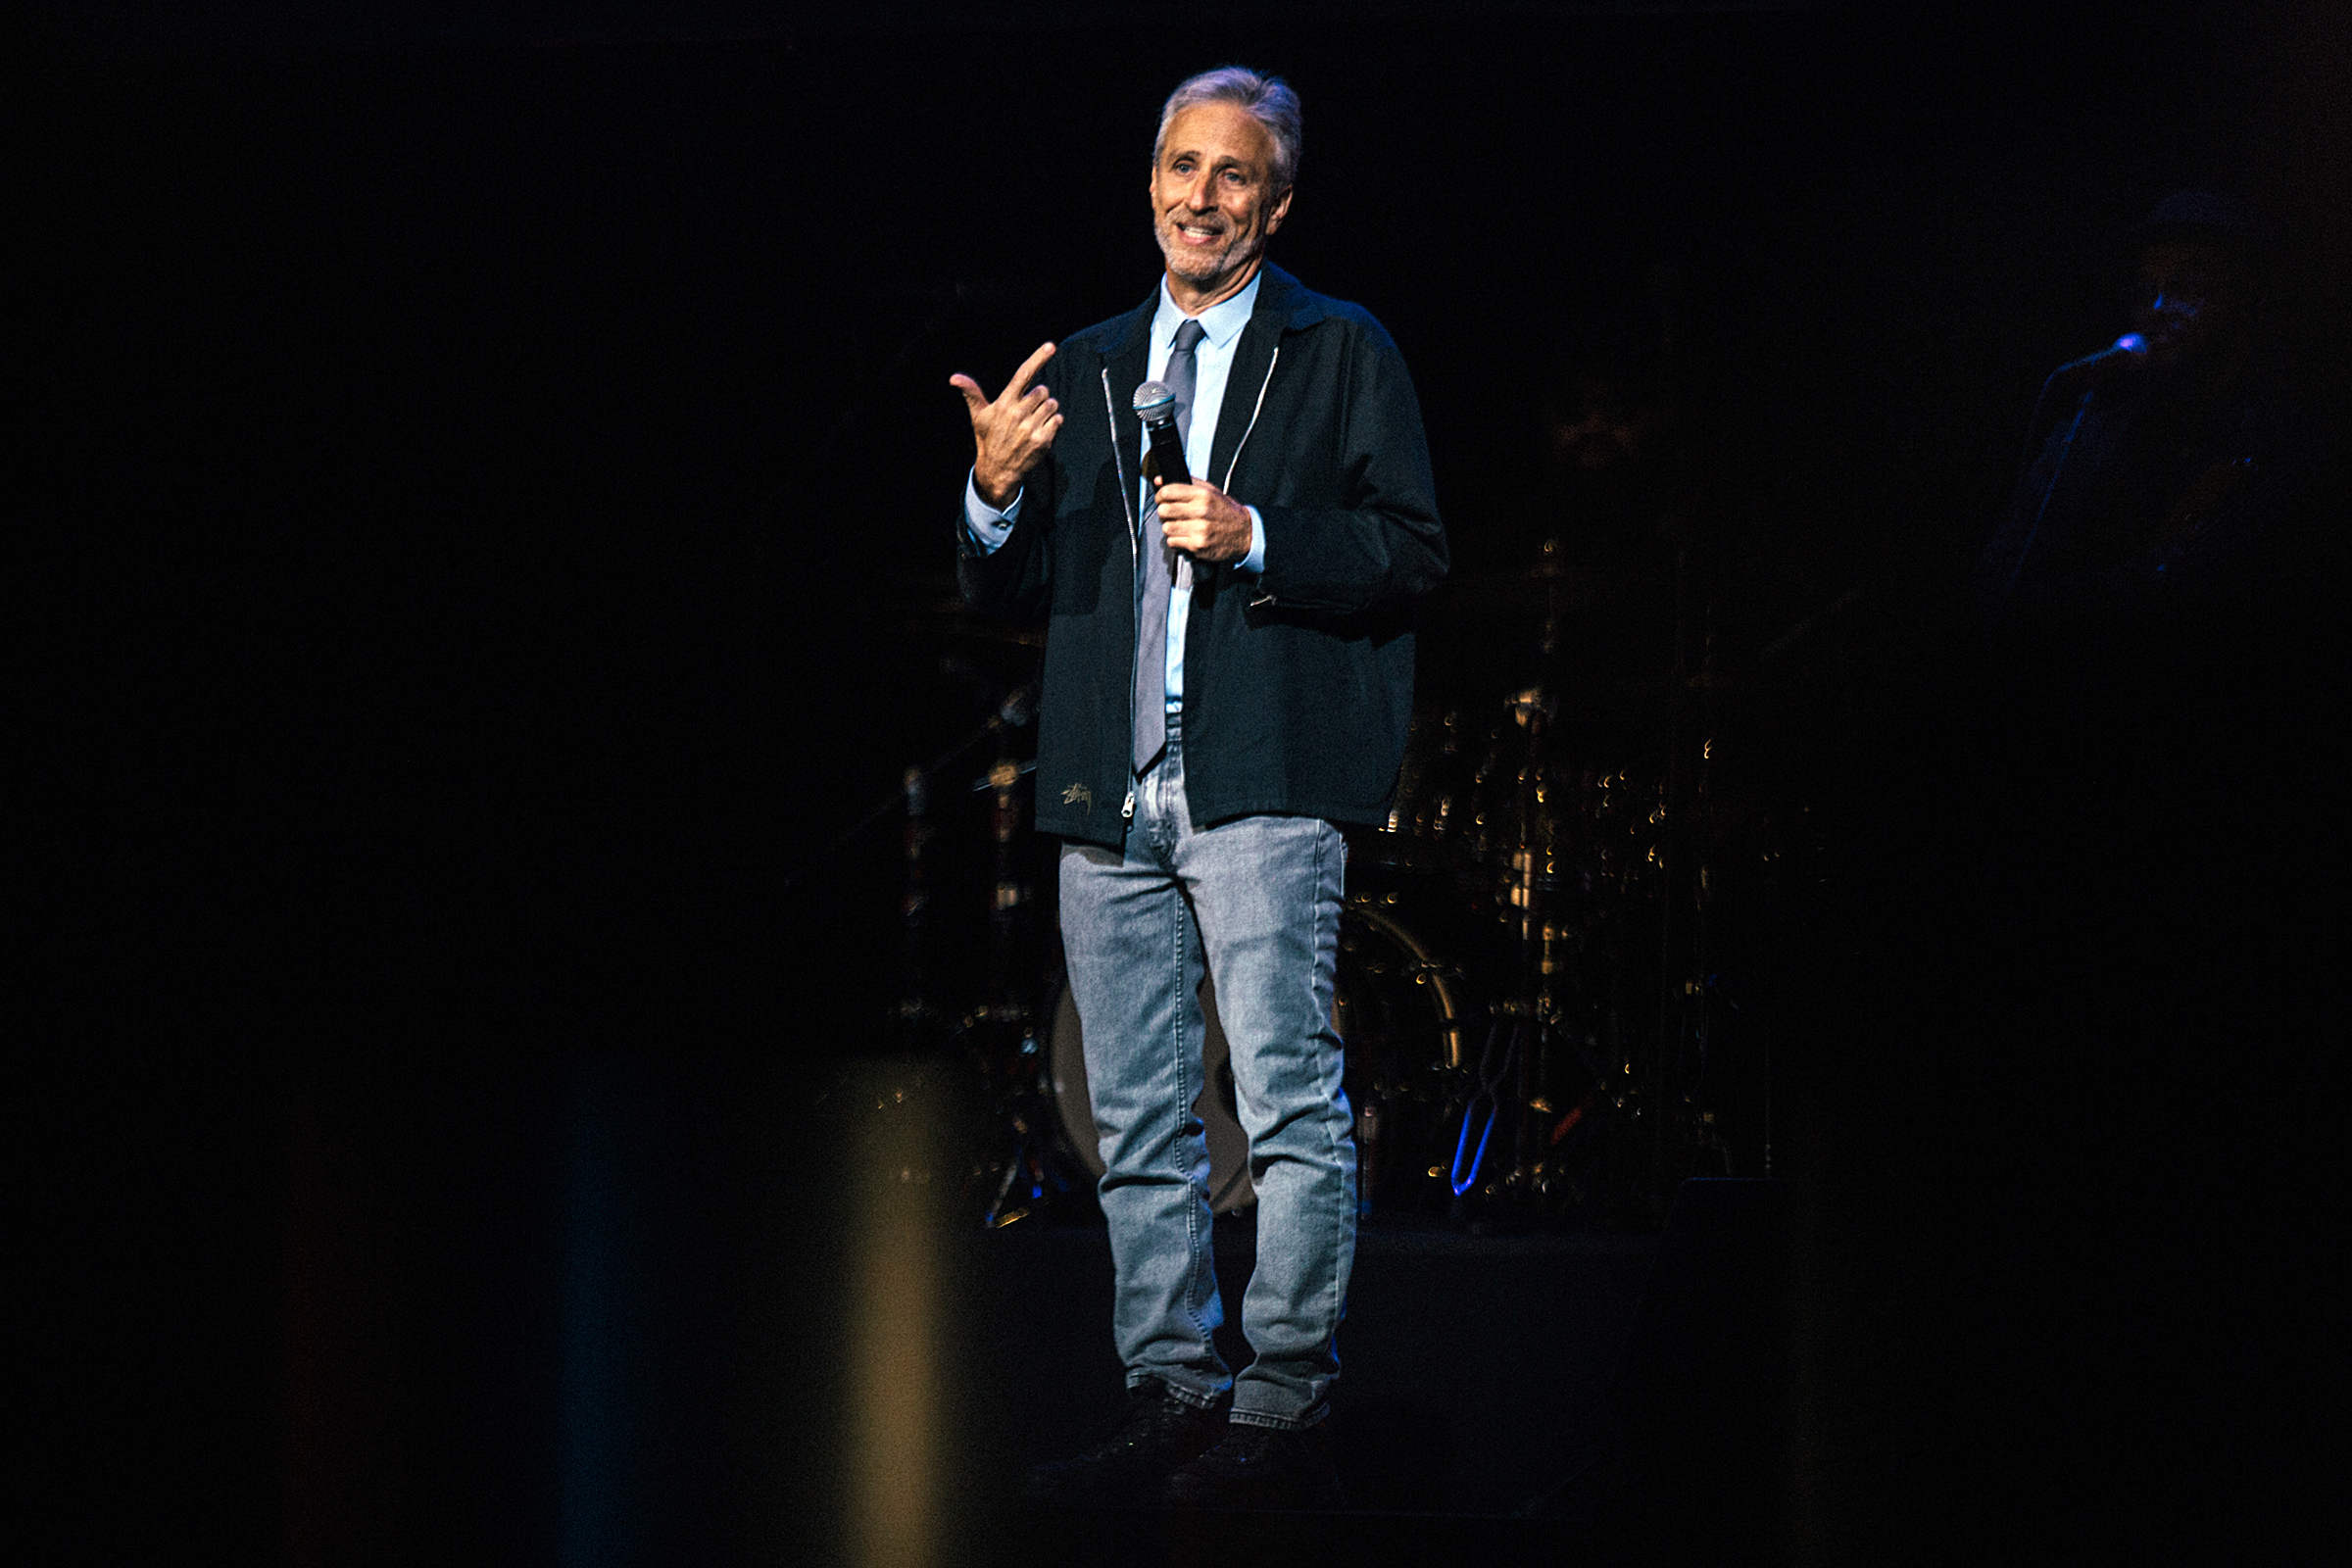 Jon Stewart performs during the 13th Annual Stand Up For Heroes benefit at the Hulu Theater at Madison Square Garden in New York City on November 4, 2019